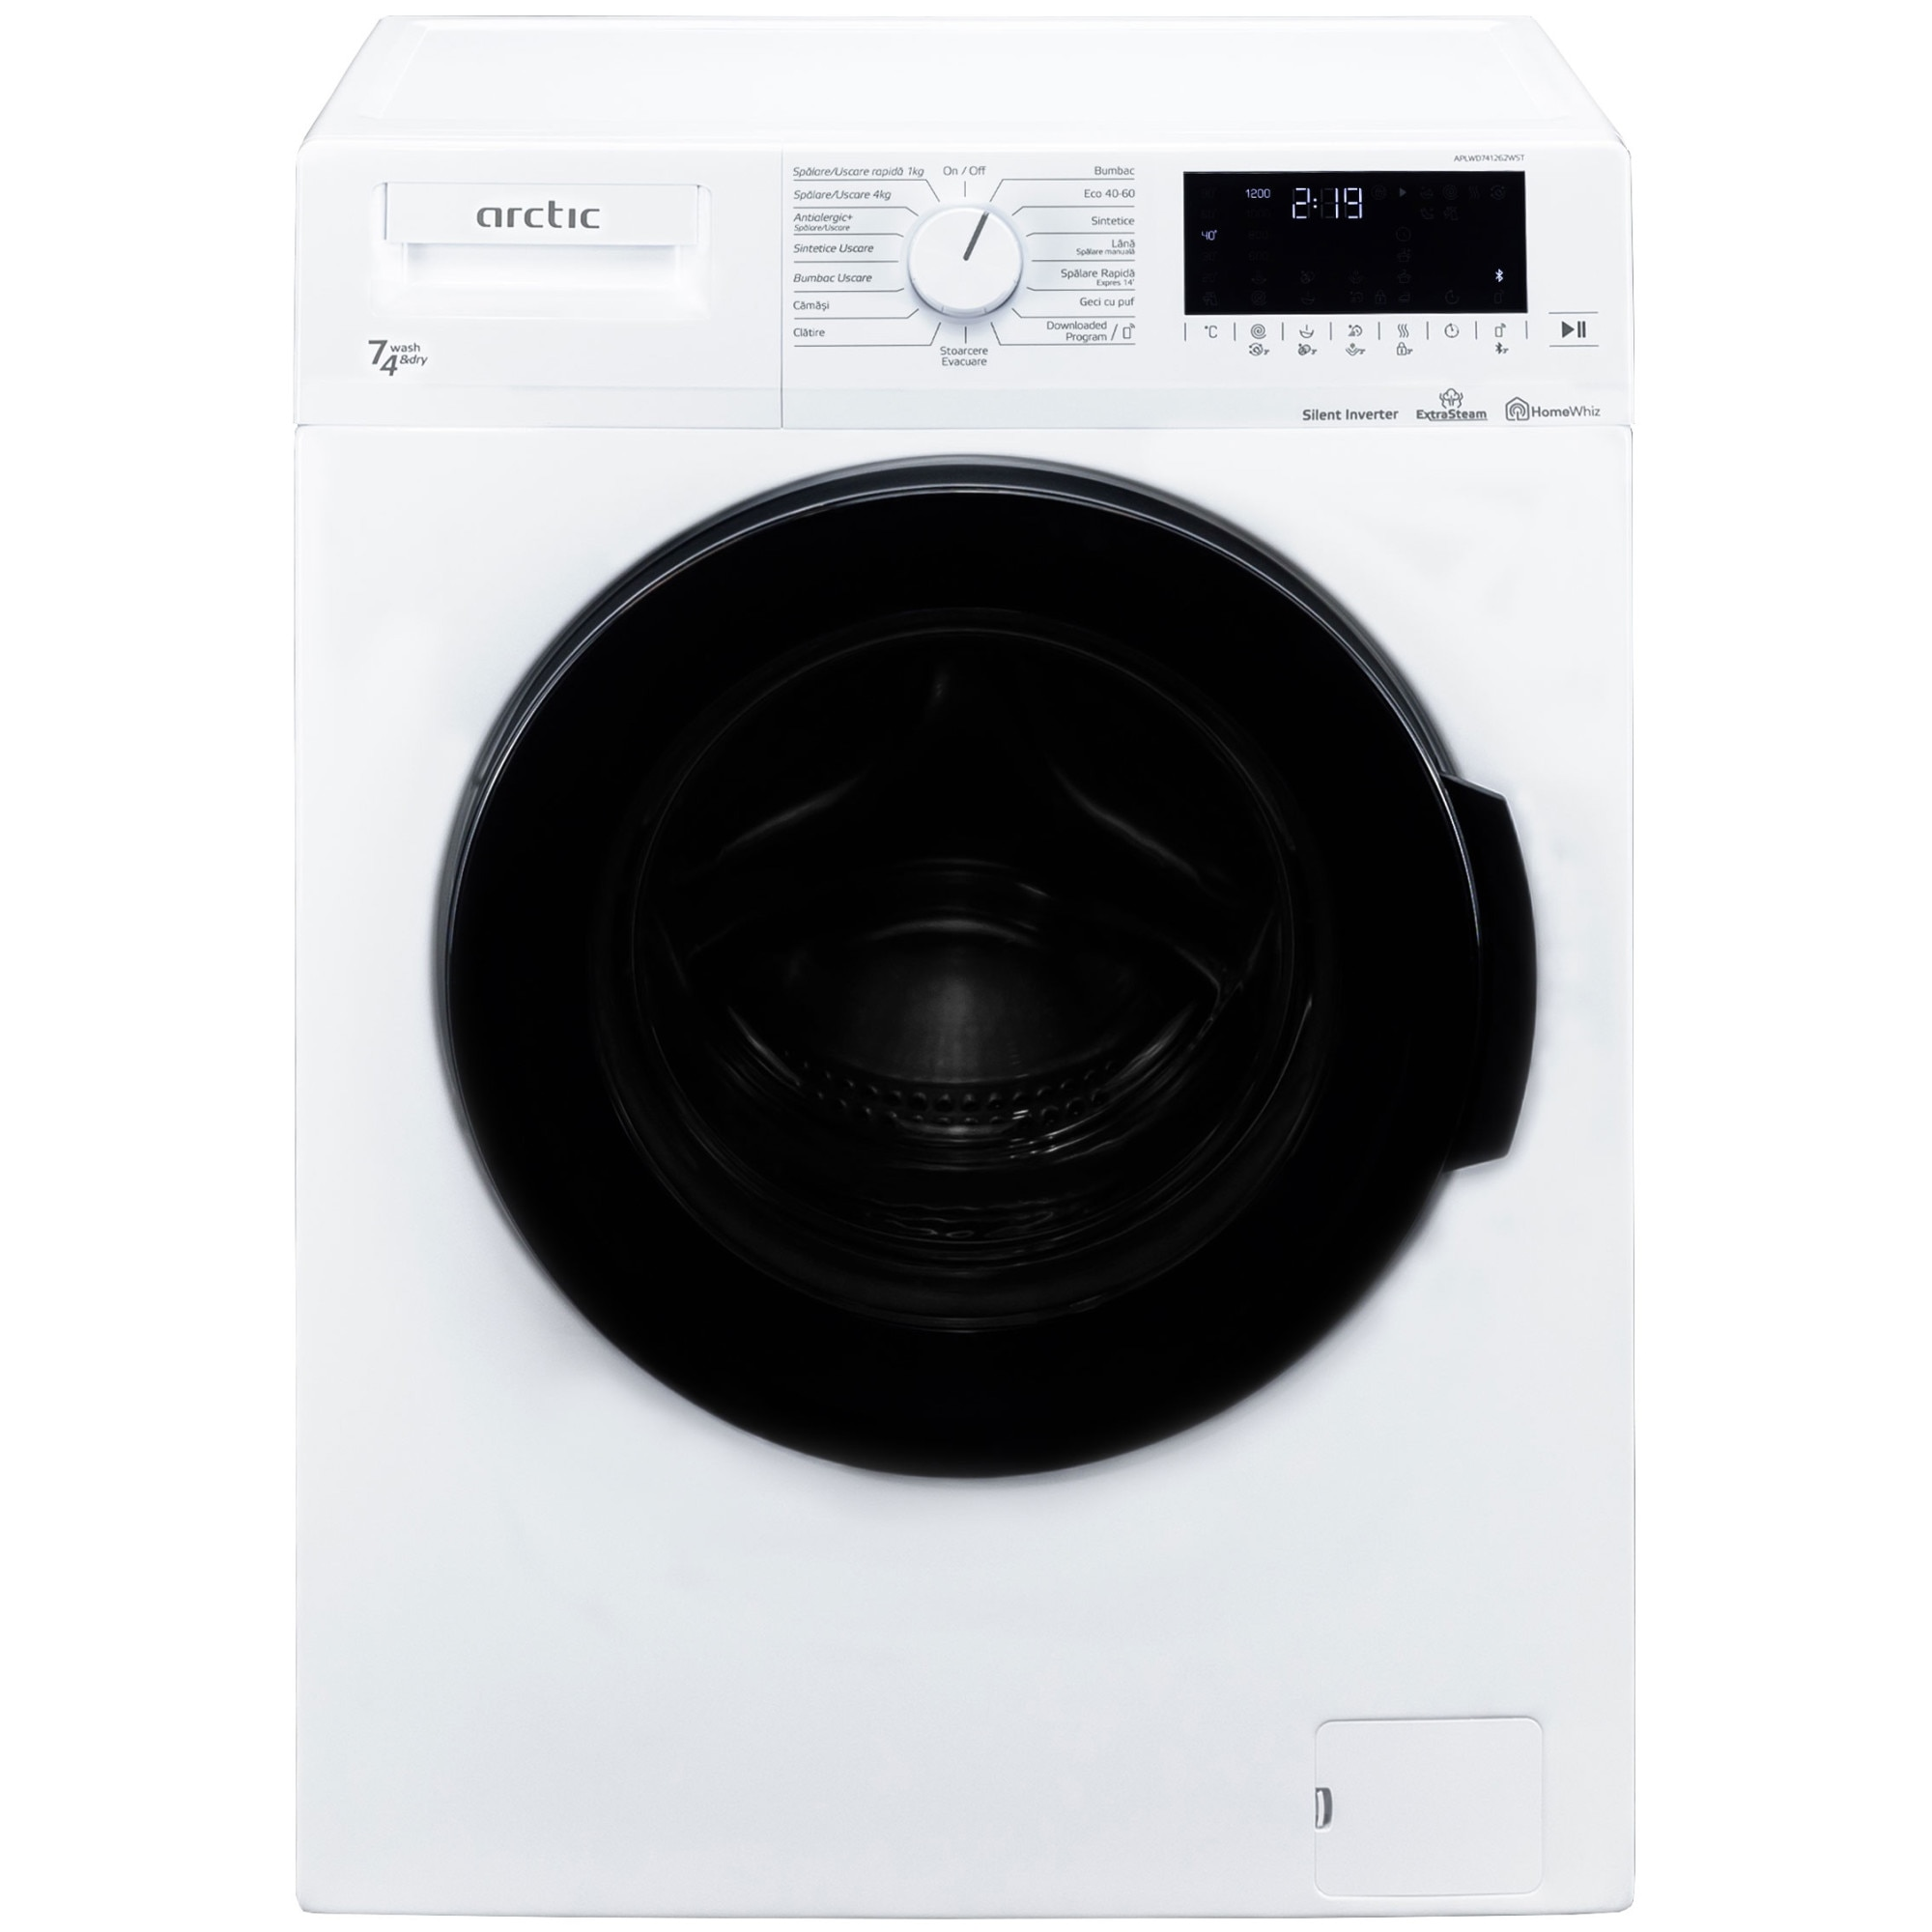 Fotografie Masina de spalat rufe cu uscator Arctic APLWD741262WST, Spalare 7 kg, Uscare 4 kg, 1200 rpm, Clasa D, Motor Silent Inverter, HomeWhiz, Conectare Bluetooth, ExtraSteam, Downloaded Program, Alb